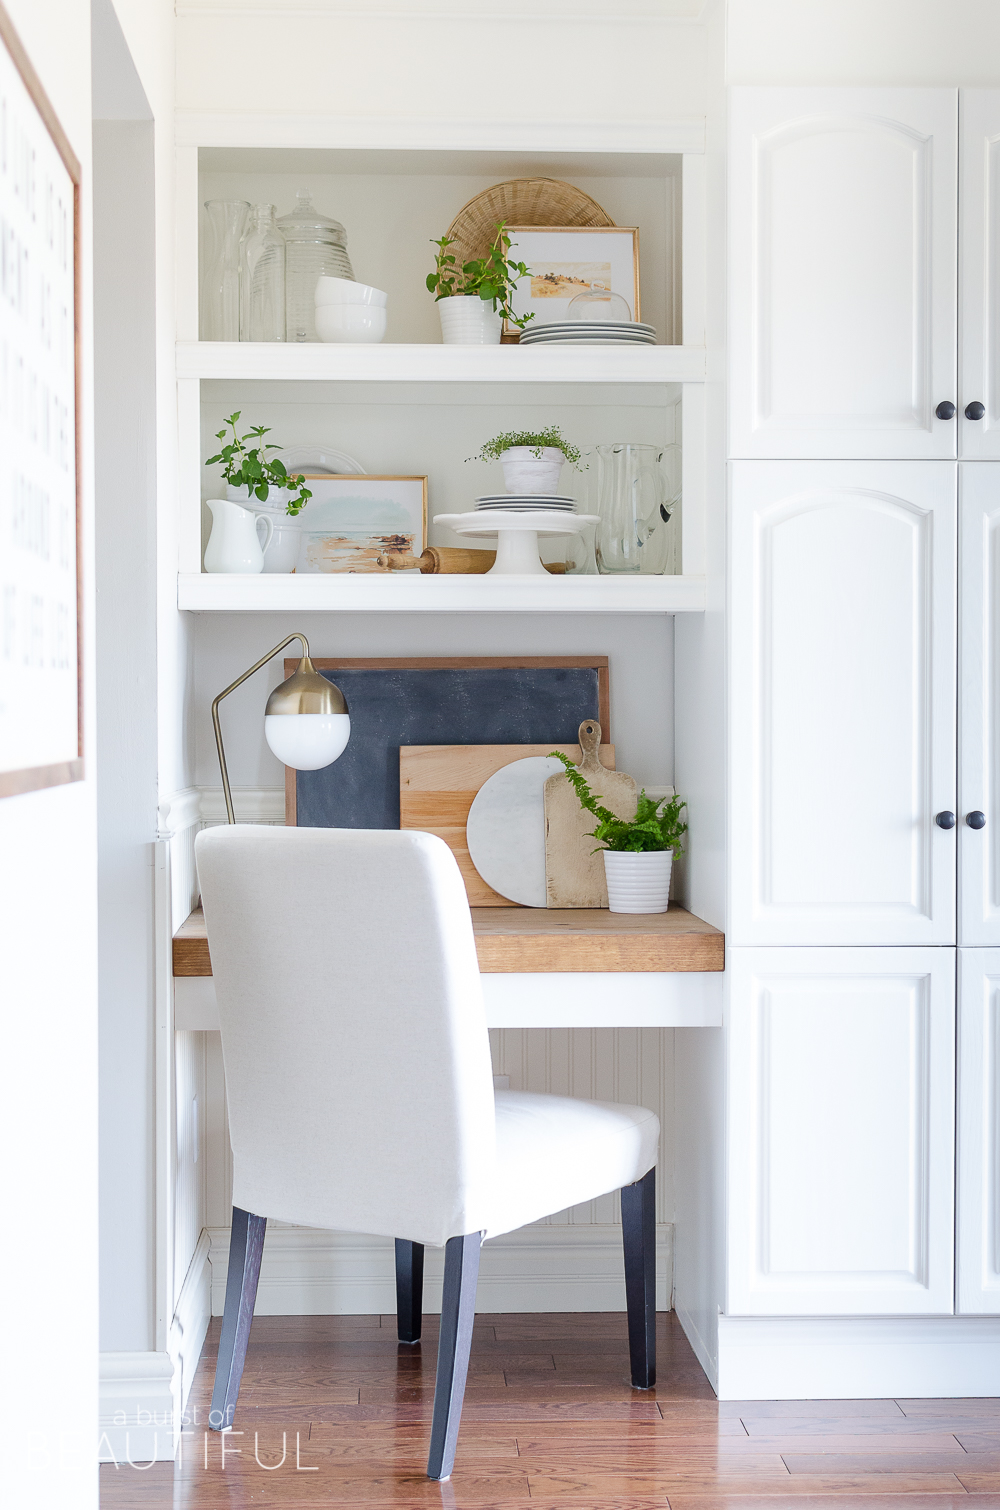 How To Style Open Shelving In The Kitchen A Burst Of: open shelving